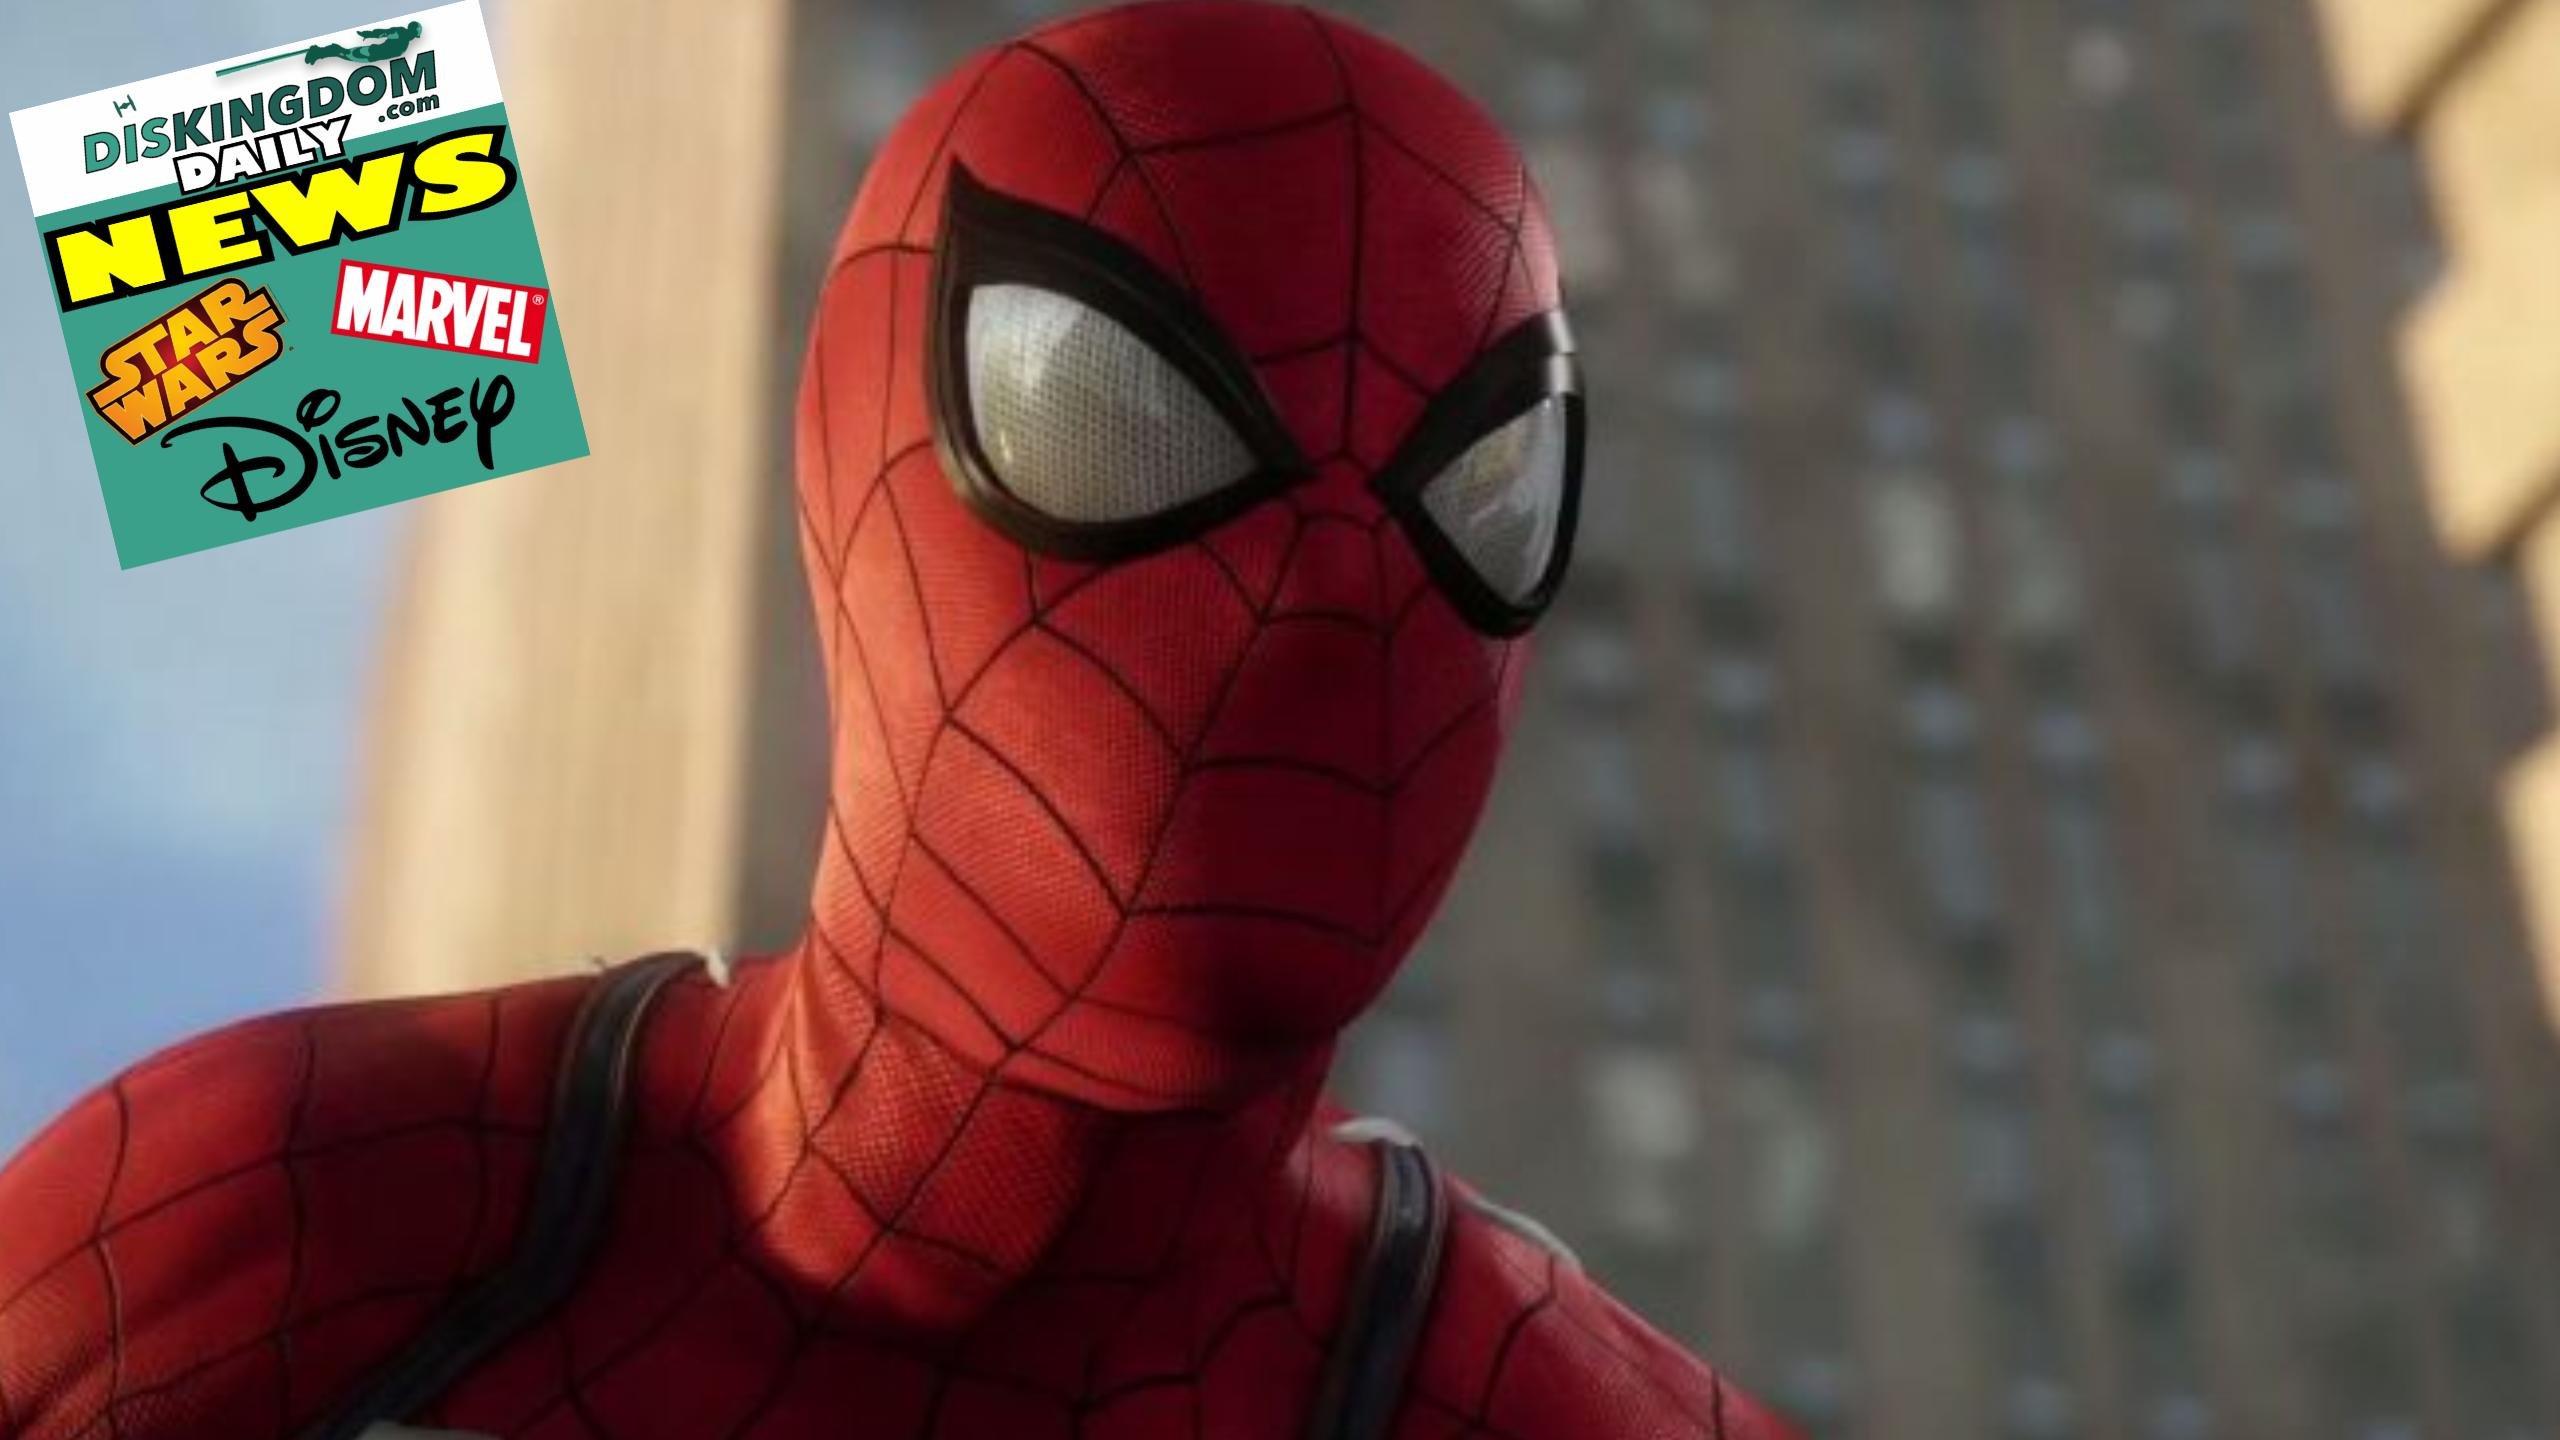 Spider-Man Shown During The PS4 Pro Event – DK Disney News